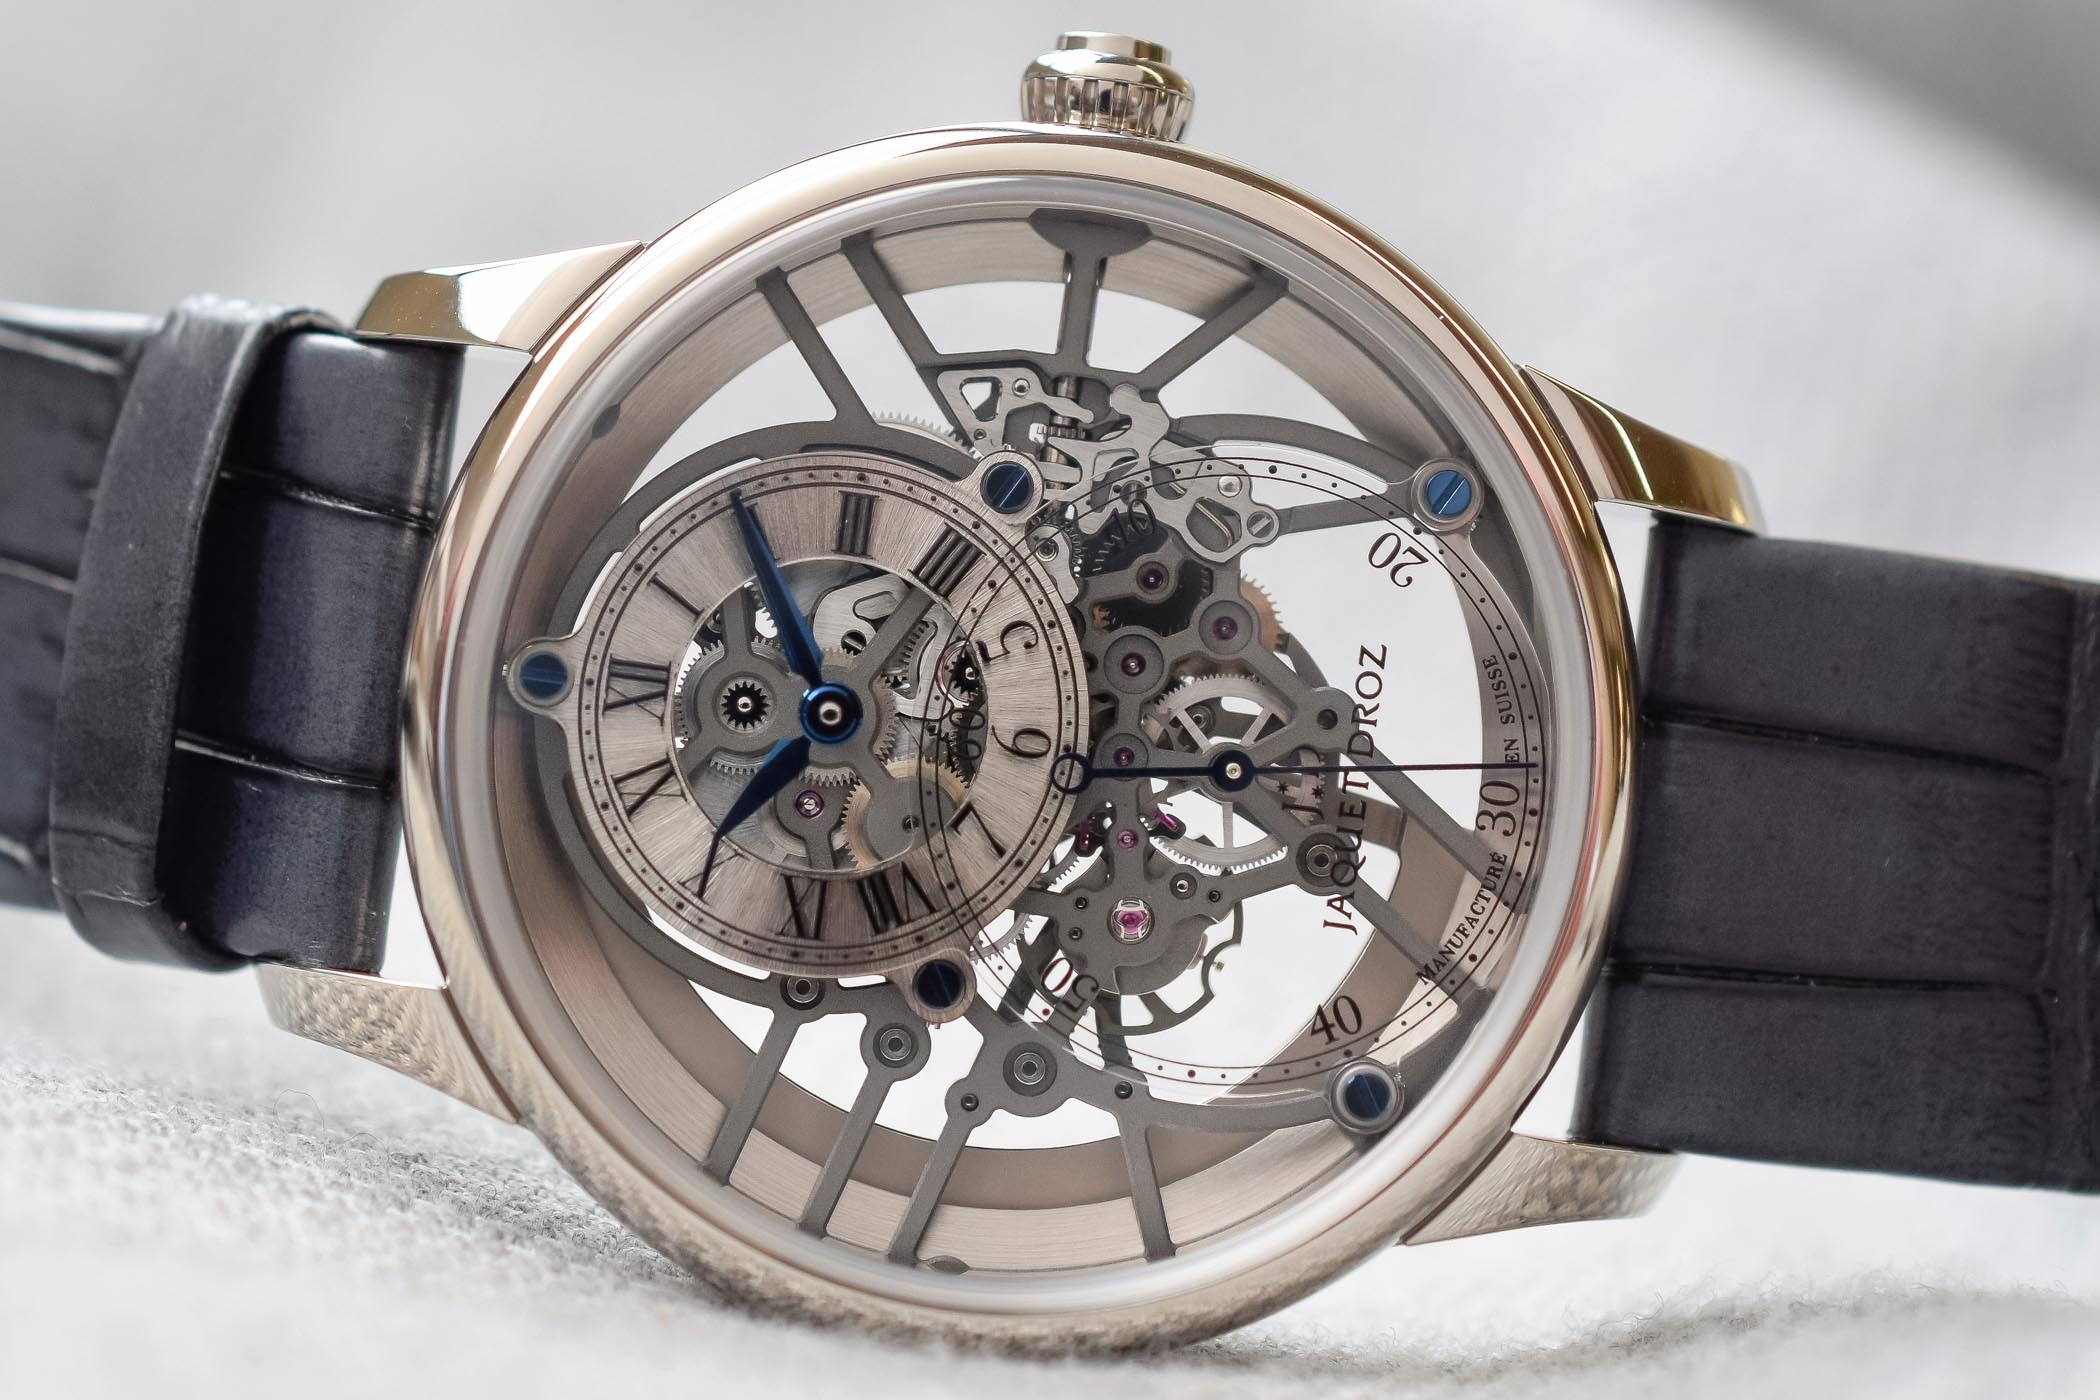 Jaquet Droz Grande Seconde Skelet-One - Baselworld 2018